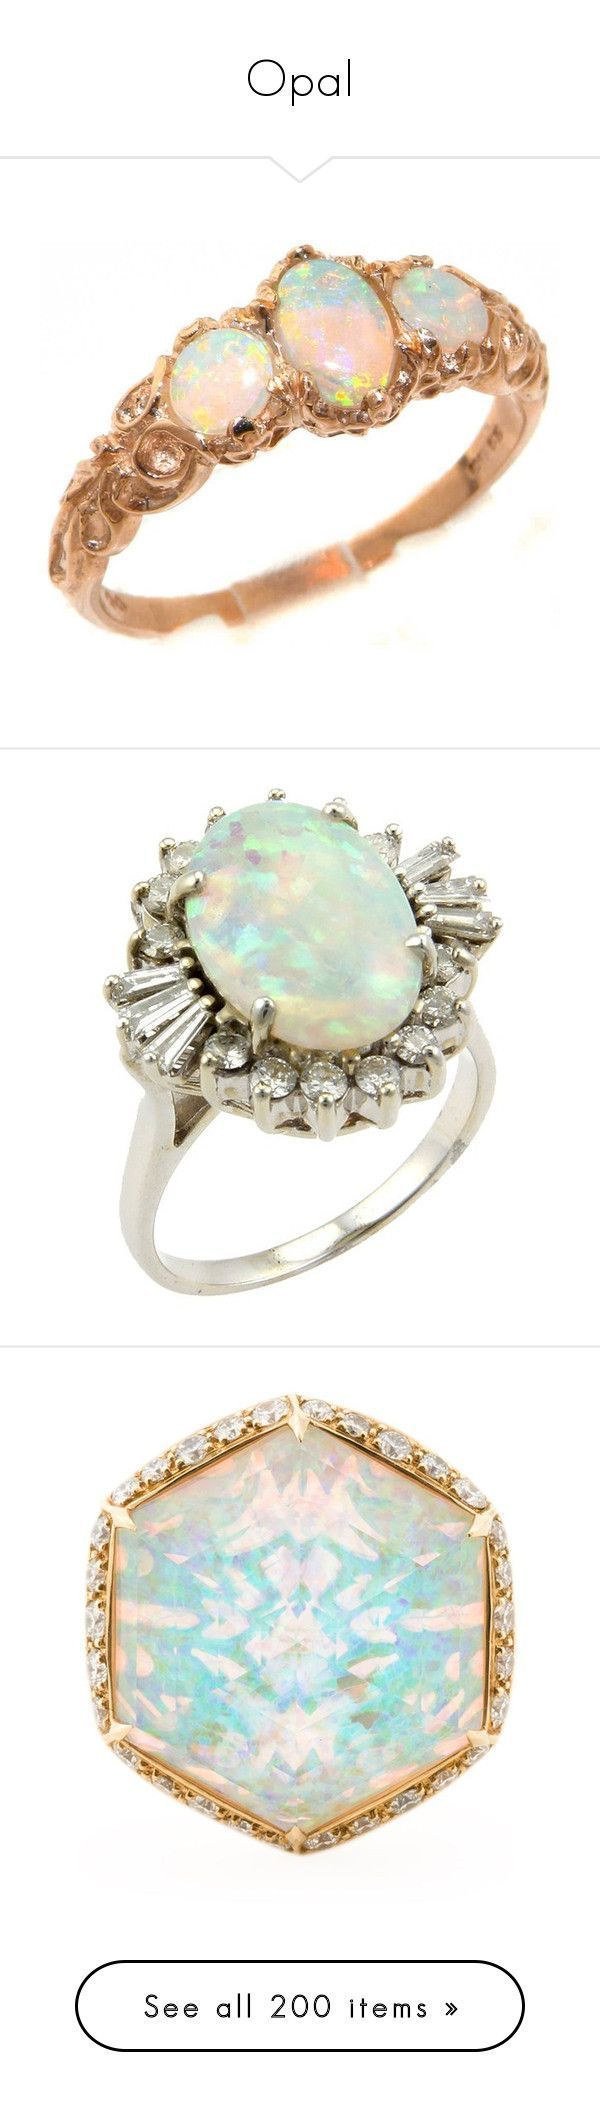 """""""Opal"""" by twinkle-twin ❤️ liked on Polyvore featuring jewelry, rings, accessories, rose gold opal ring, 14k ring, pink gold engagement rings, anniversary rings, eternity rings, colorful diamond rings and white gold diamond rings"""